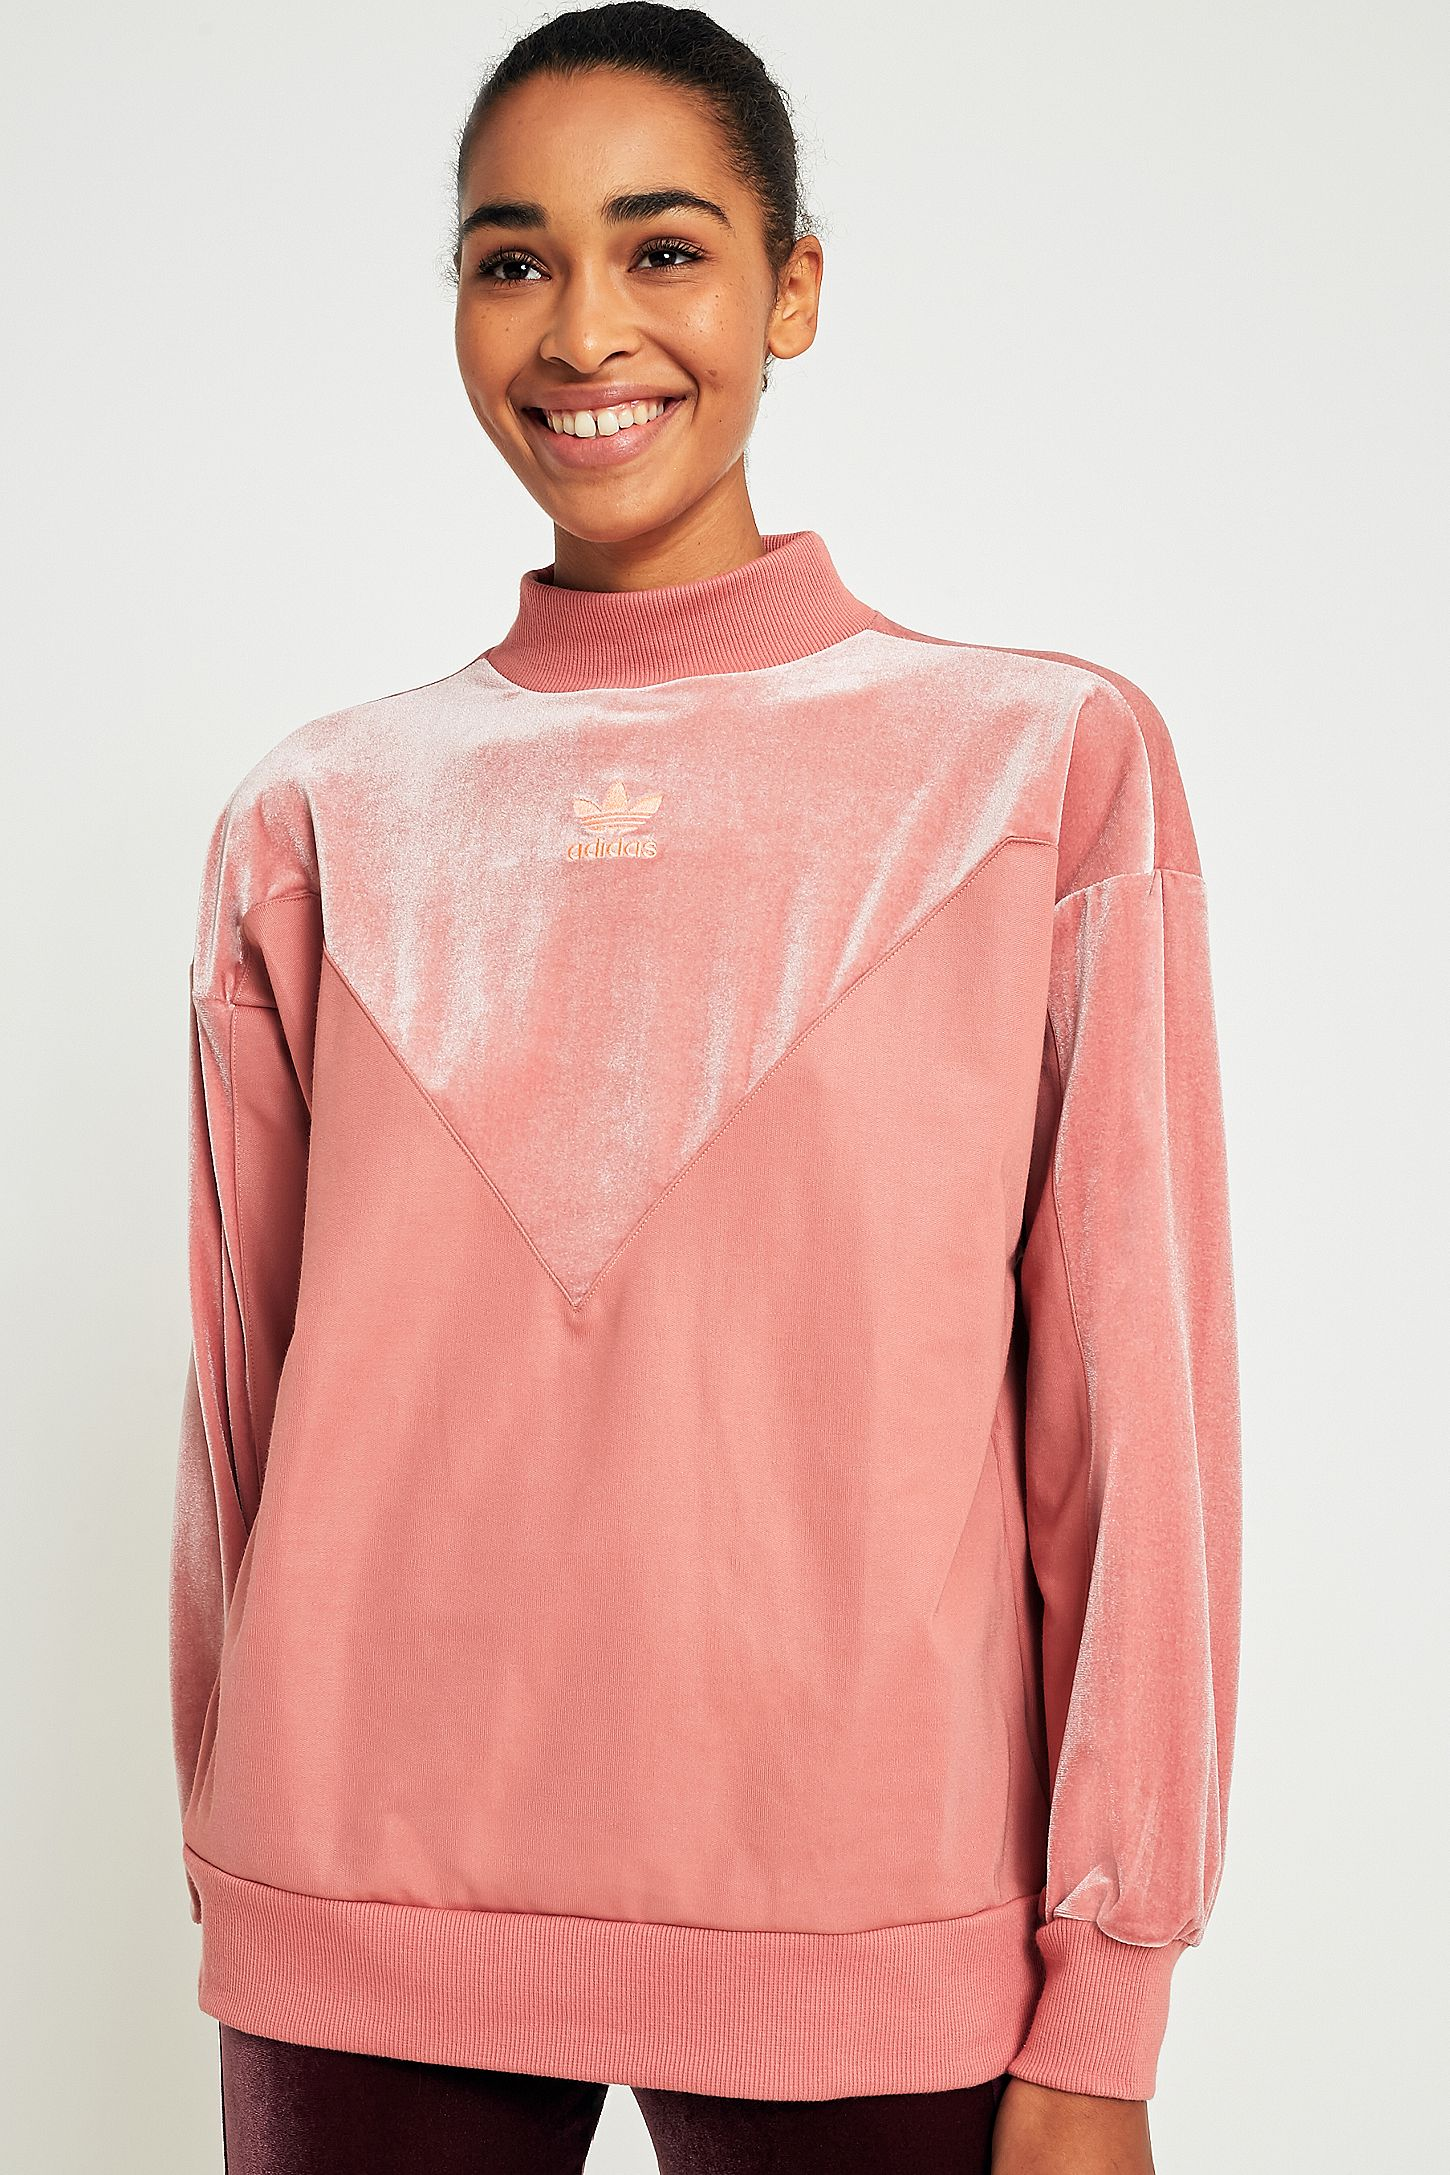 9ae79b22ffa5 adidas Originals Pink Velvet Boyfriend Sweatshirt. Click on image to zoom.  Hover to zoom. Double Tap to Zoom